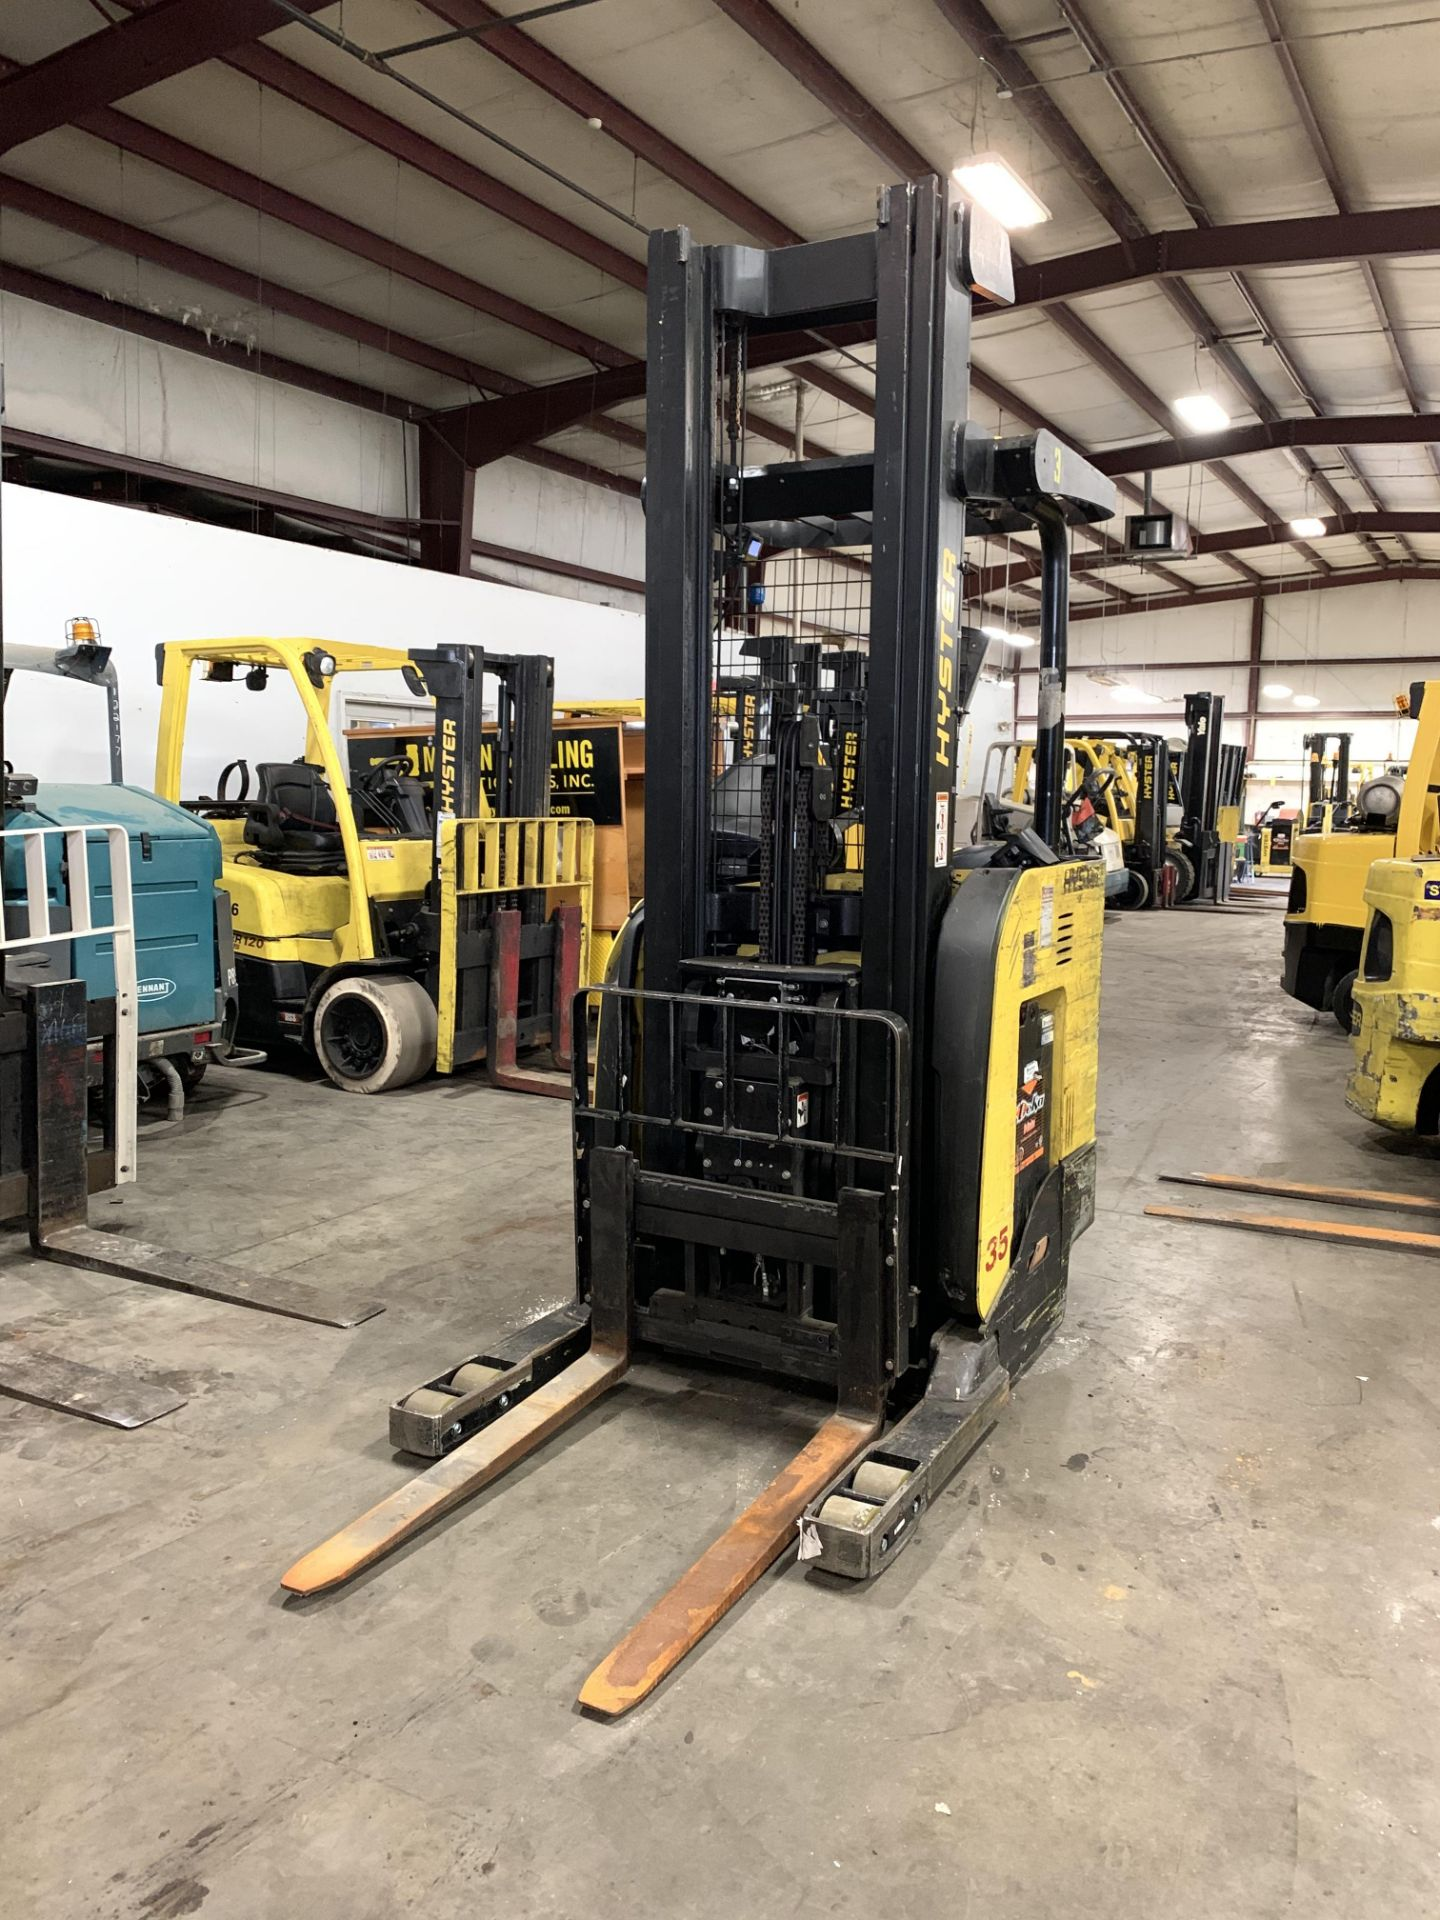 """*LOCATED IN OHIO* 2015 HYSTER 3,500-LB. CAPACITY REACH TRUCK, MOD NR35, 111"""" LOWER/251'' LIFT HEIGHT - Image 2 of 7"""